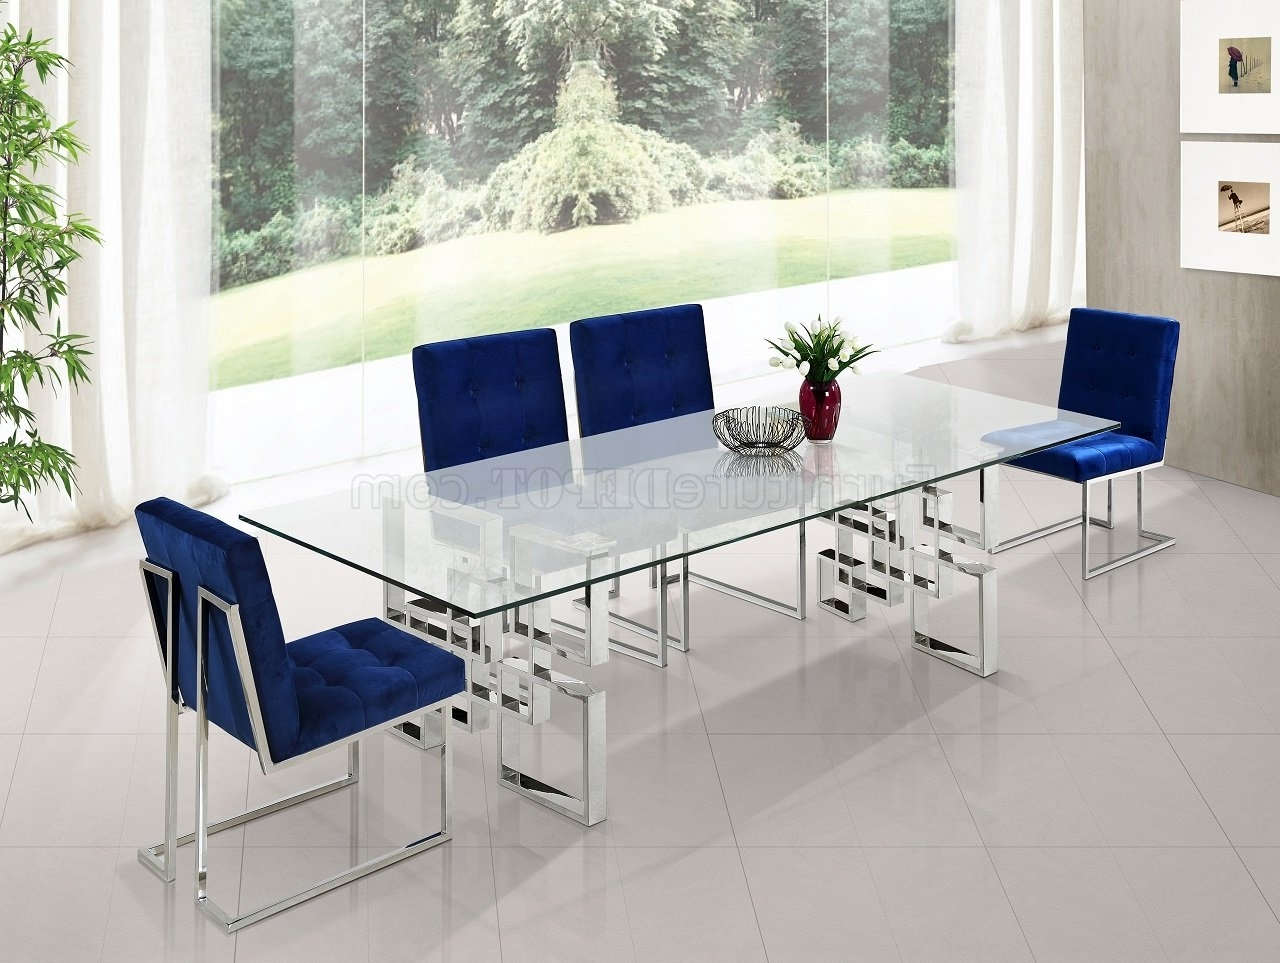 Chrome Dining Sets In Well Liked Alexis 731 Chrome Dining Table W/glass Top & Optional Chairs (View 10 of 25)